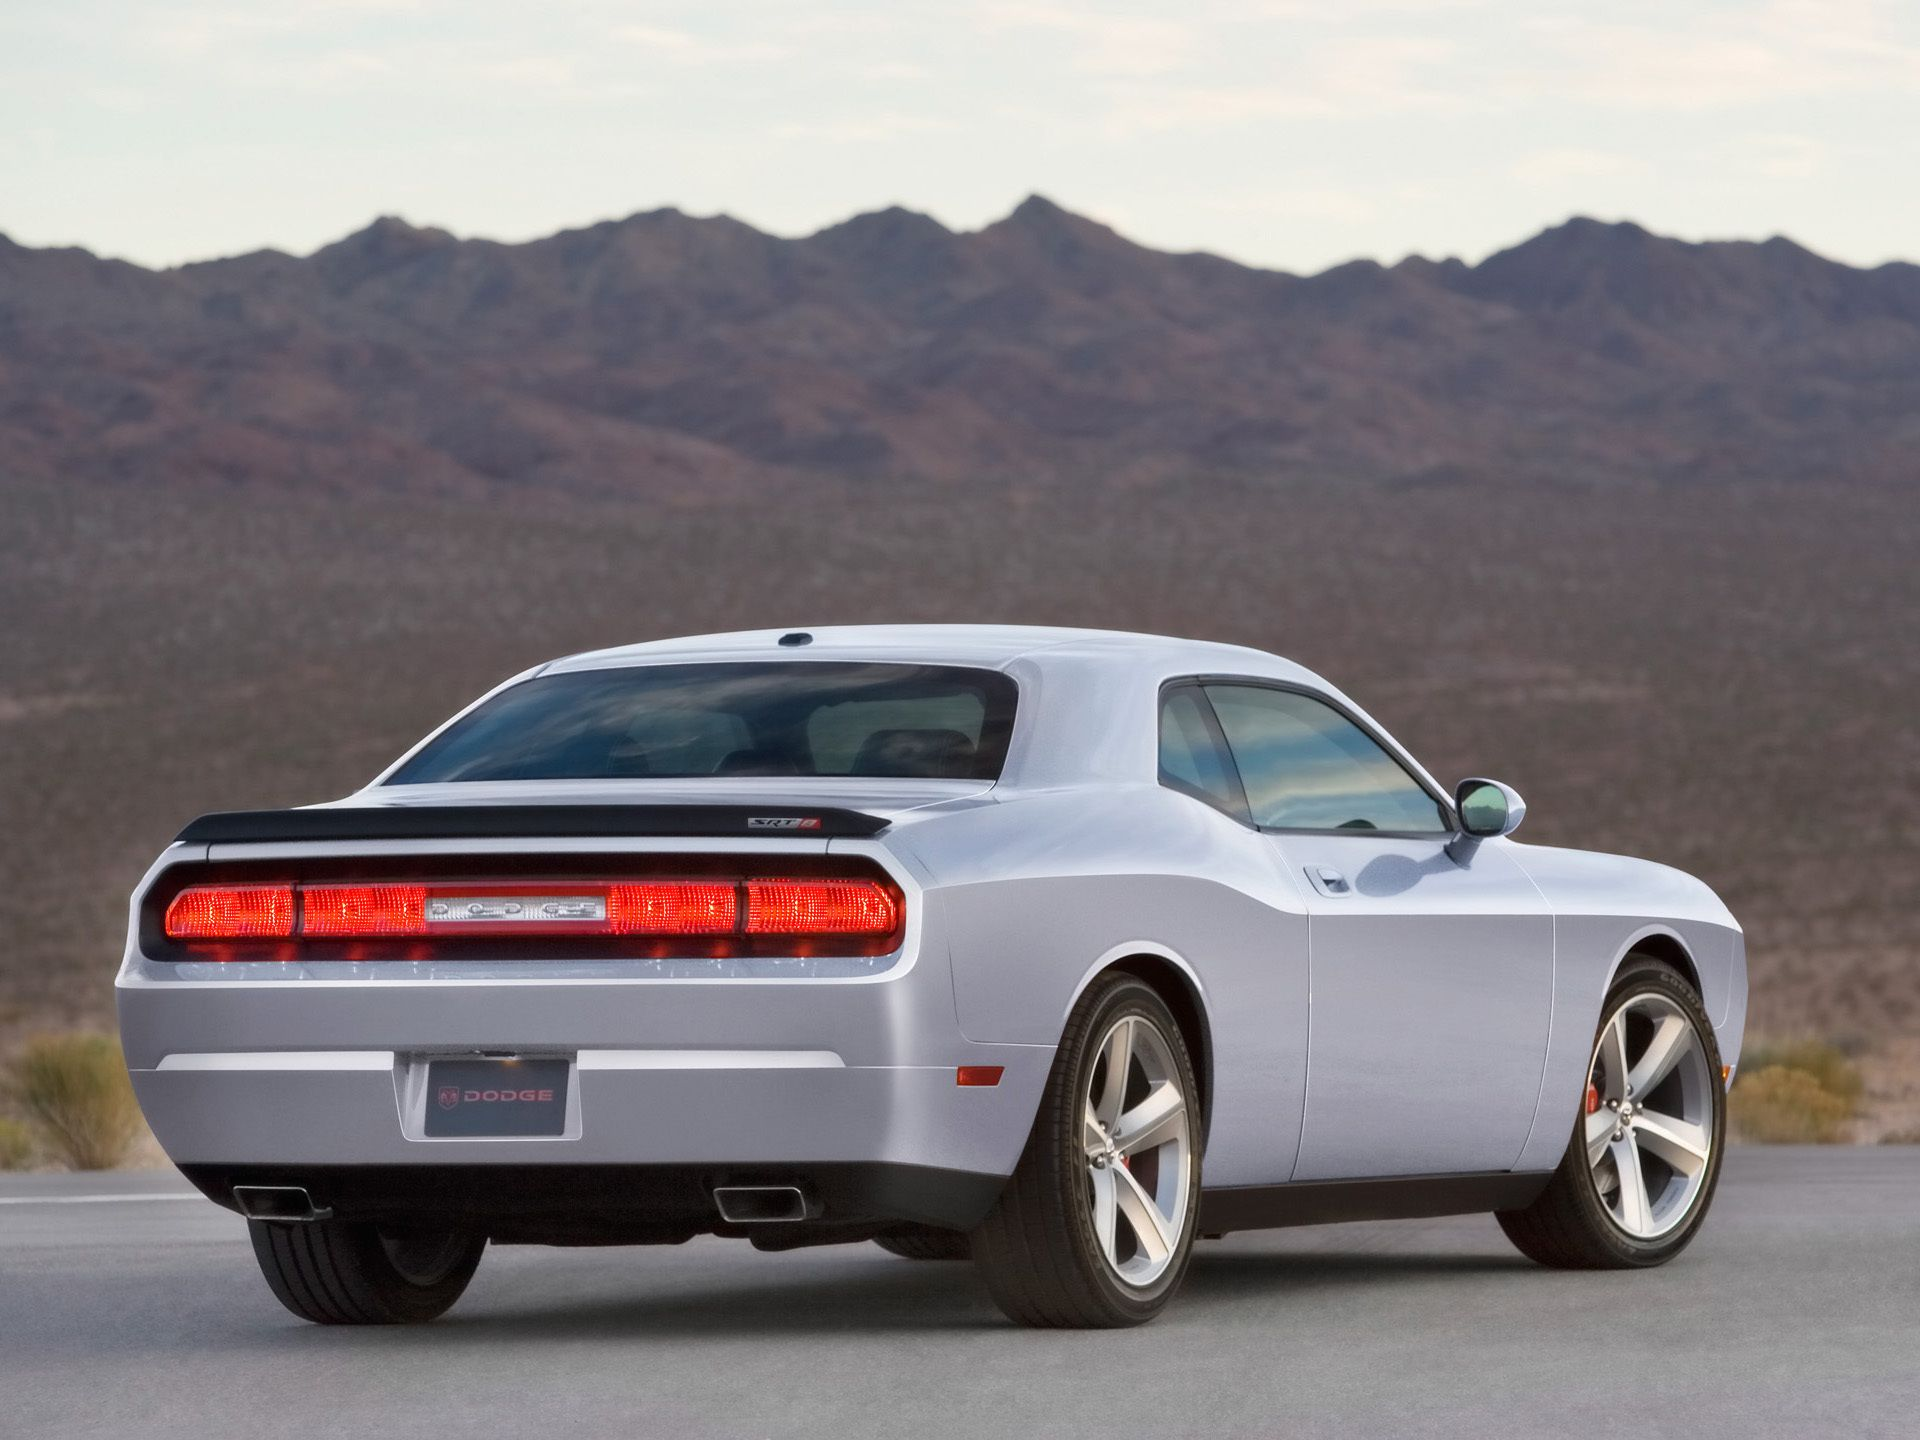 You can bookmark this page url http useddaewoocars blogspot com by 2012 06 dodge challenger srt8 html